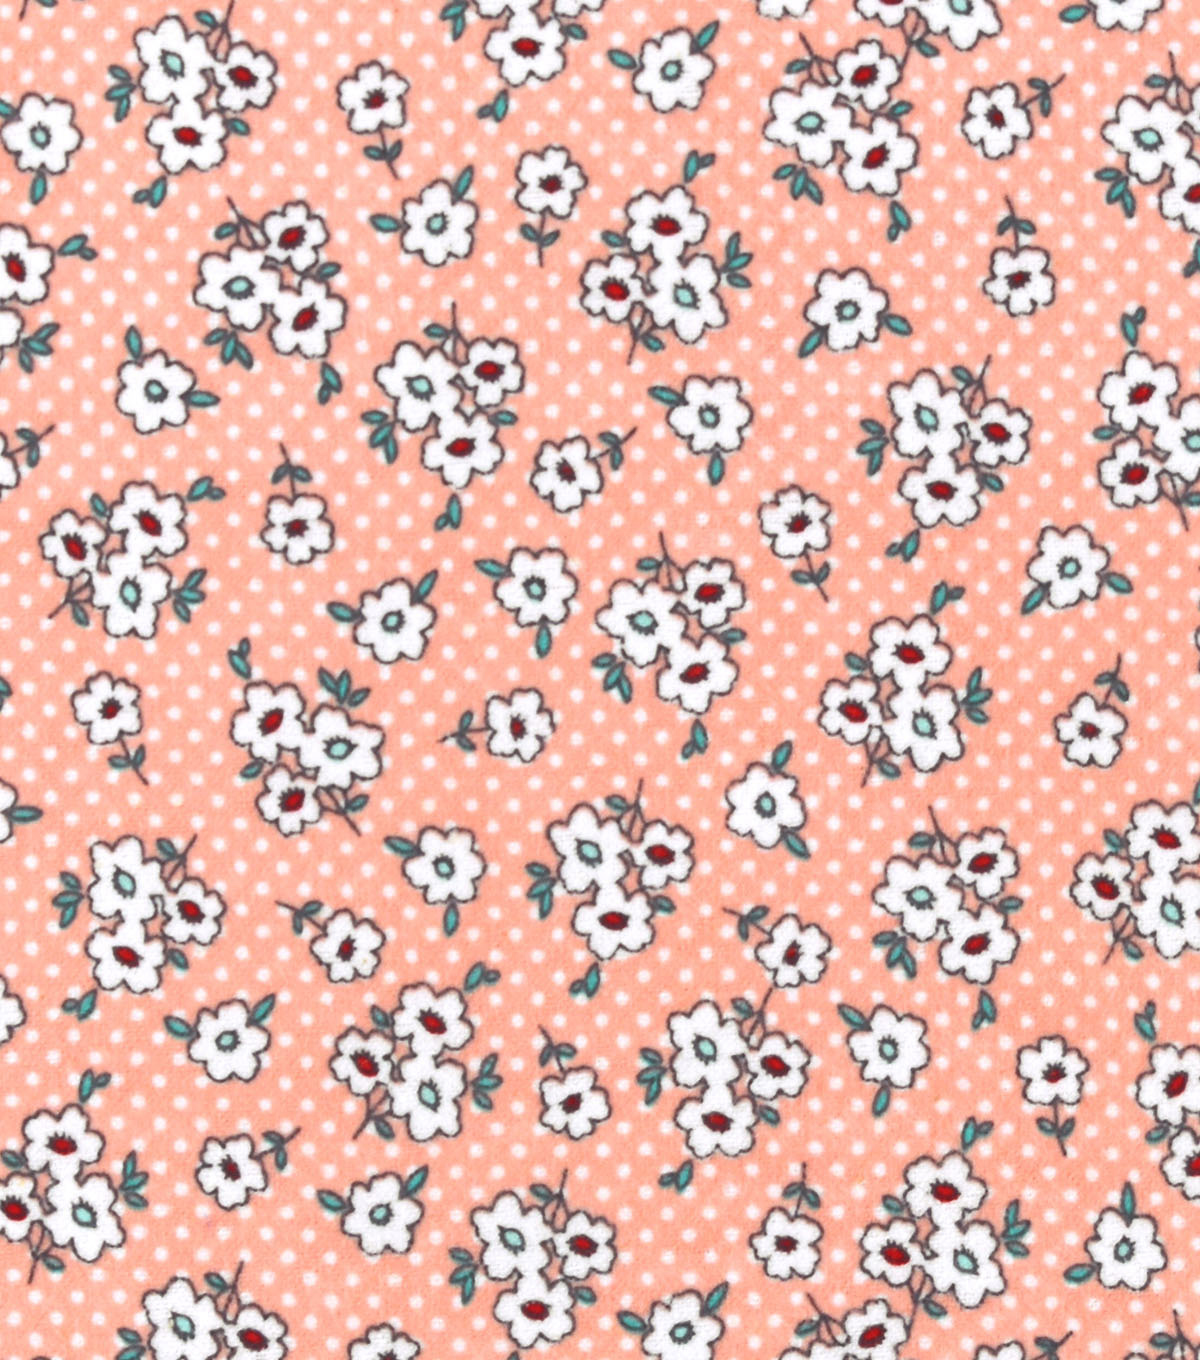 Snuggle Flannel Fabric -Pink Ditsy Floral